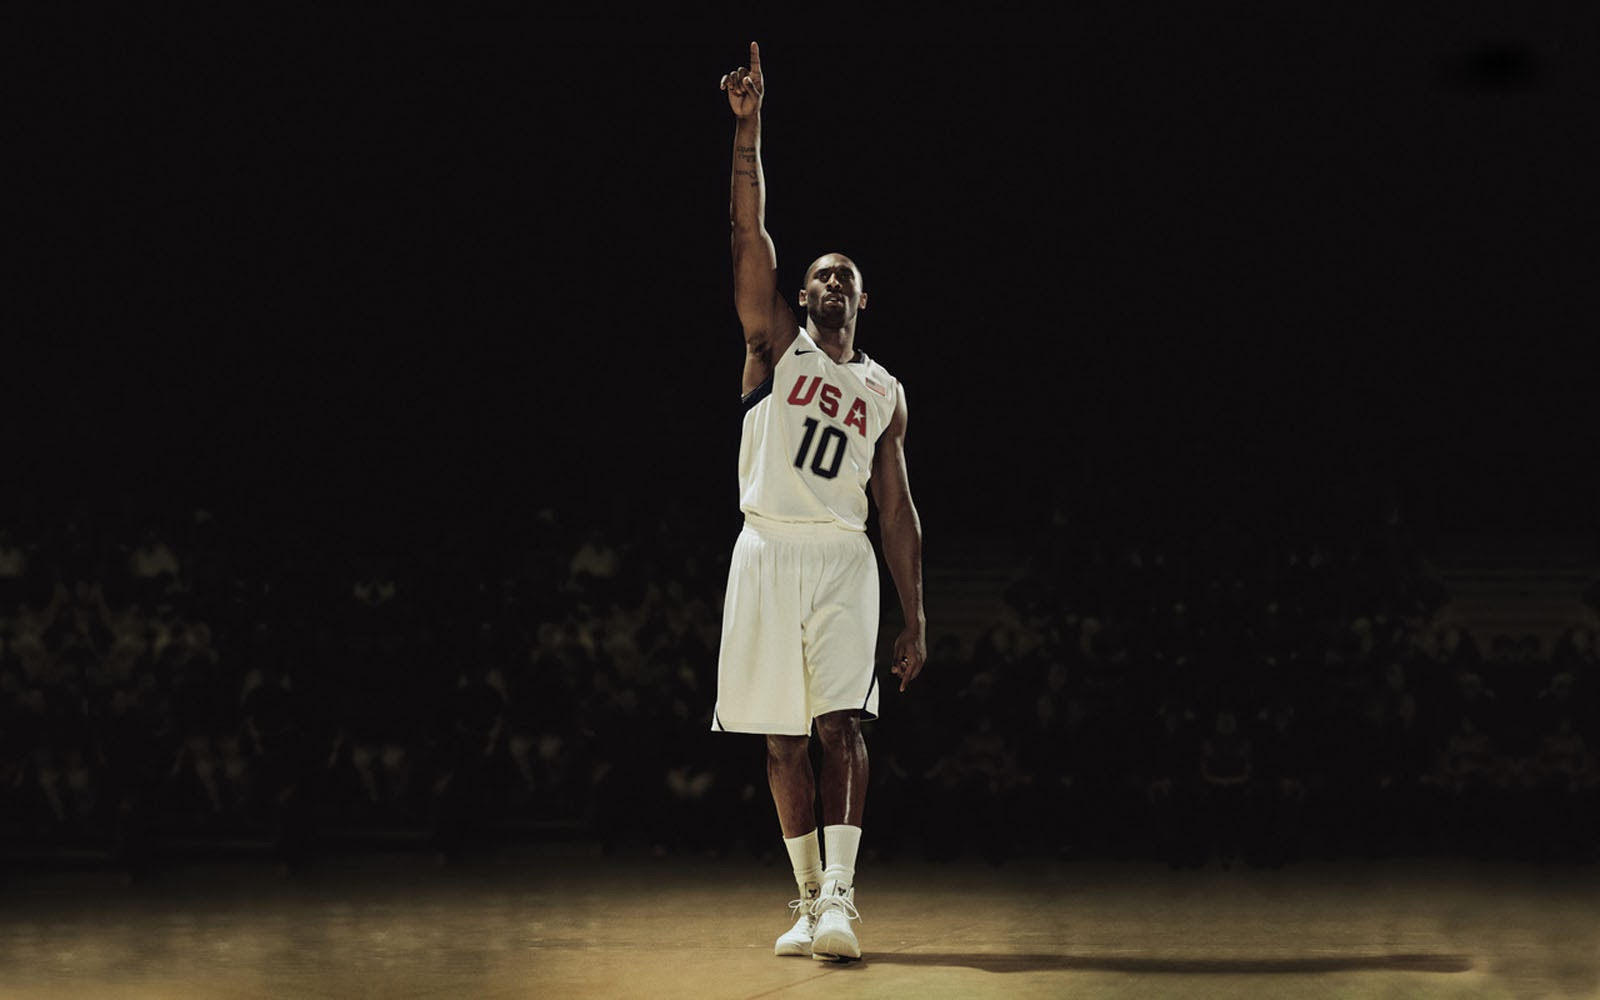 Tag Kobe Bryant Wallpapers Backgrounds Photos Images and Pictures 1600x1000